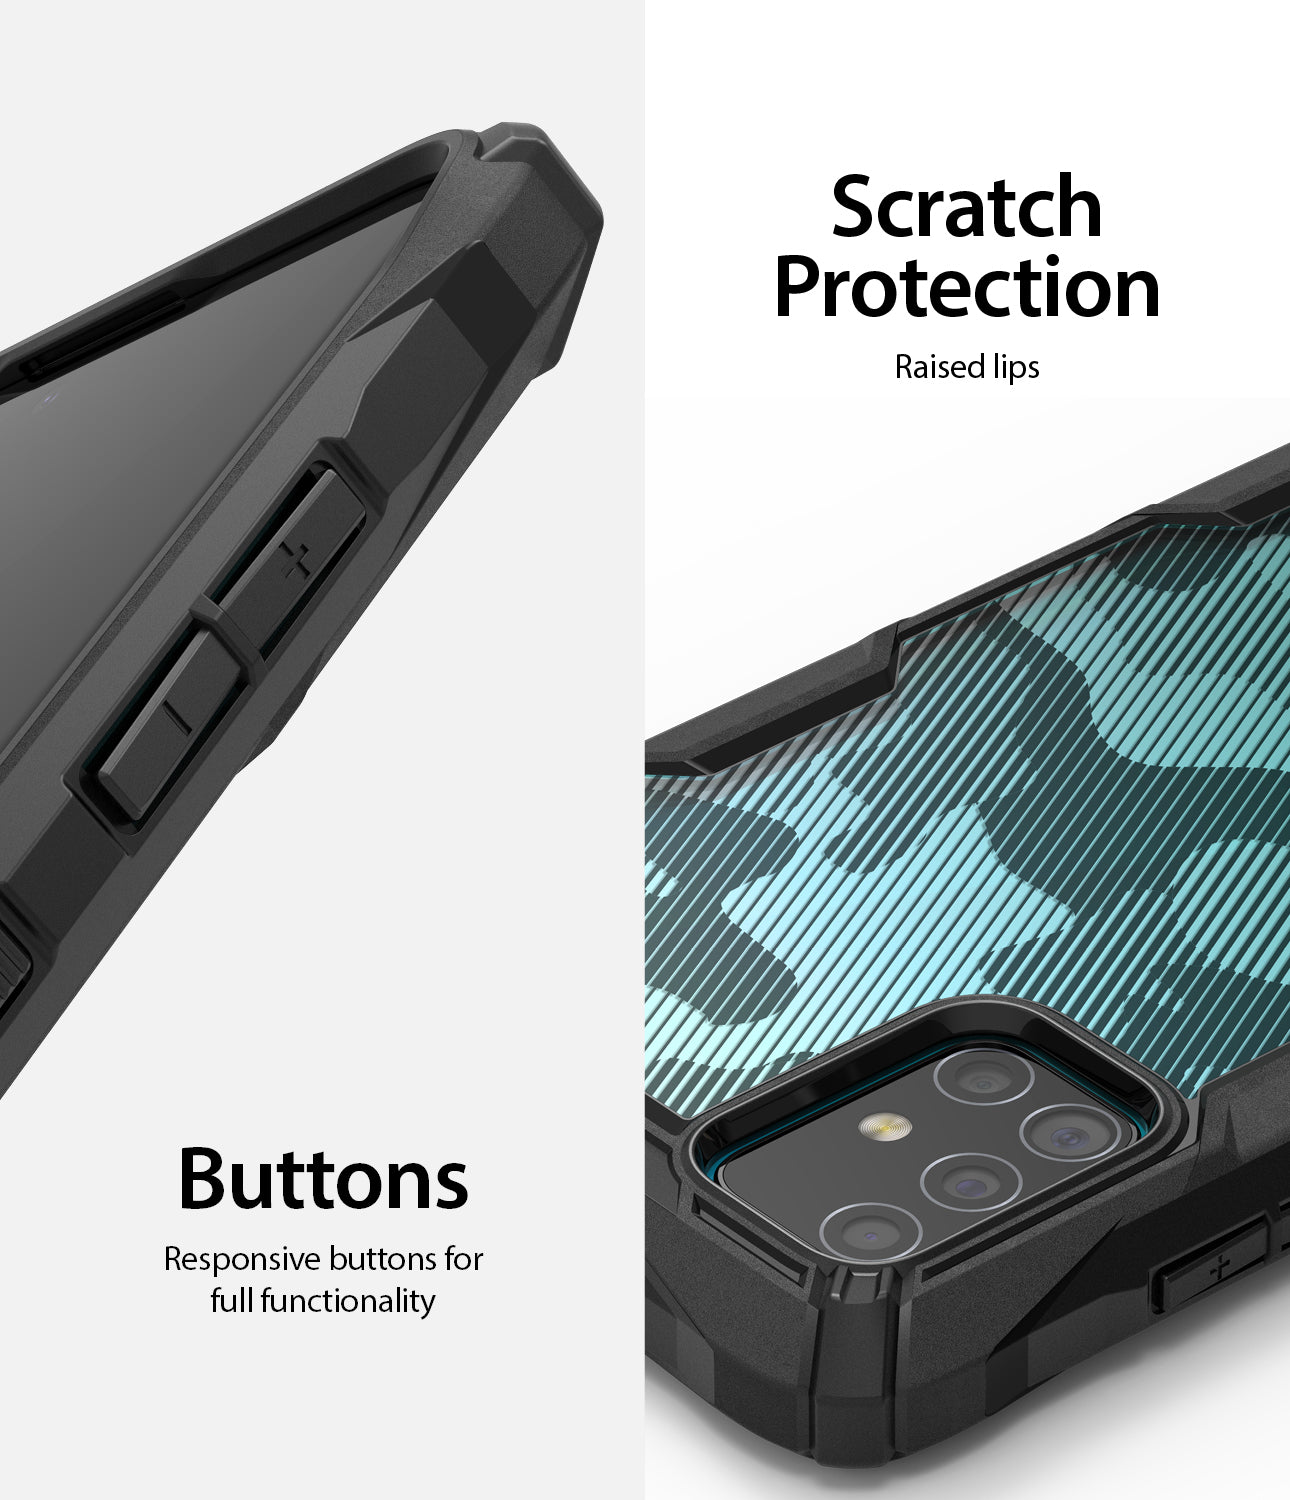 scratch protection raised lip, responsive buttons for full functionality